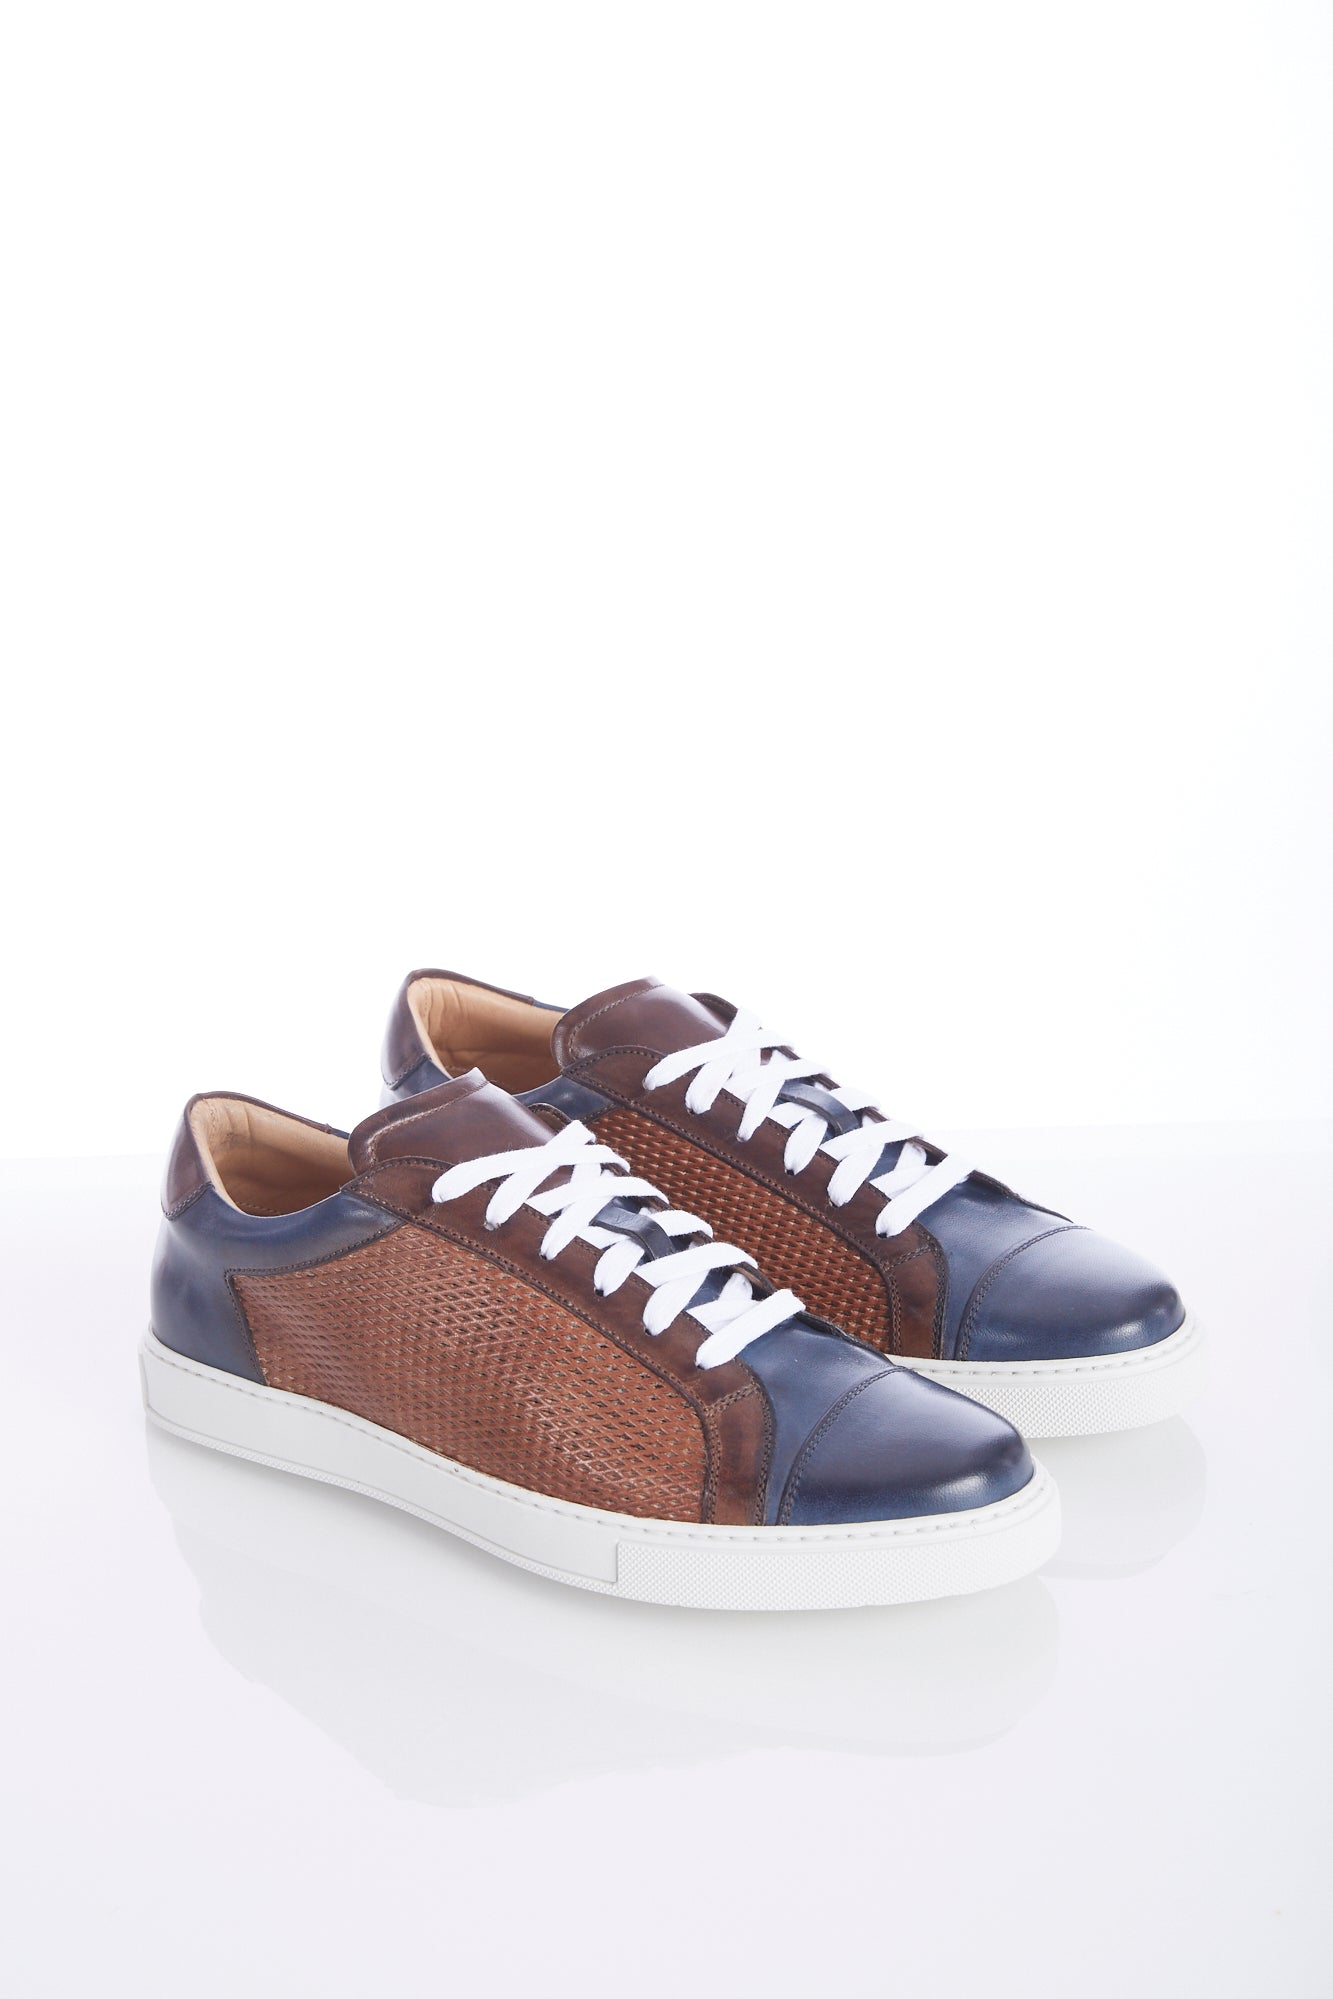 Giulio Moretti Multicolour Leather Sneaker - Shoes - Giulio Moretti - LALONDE's